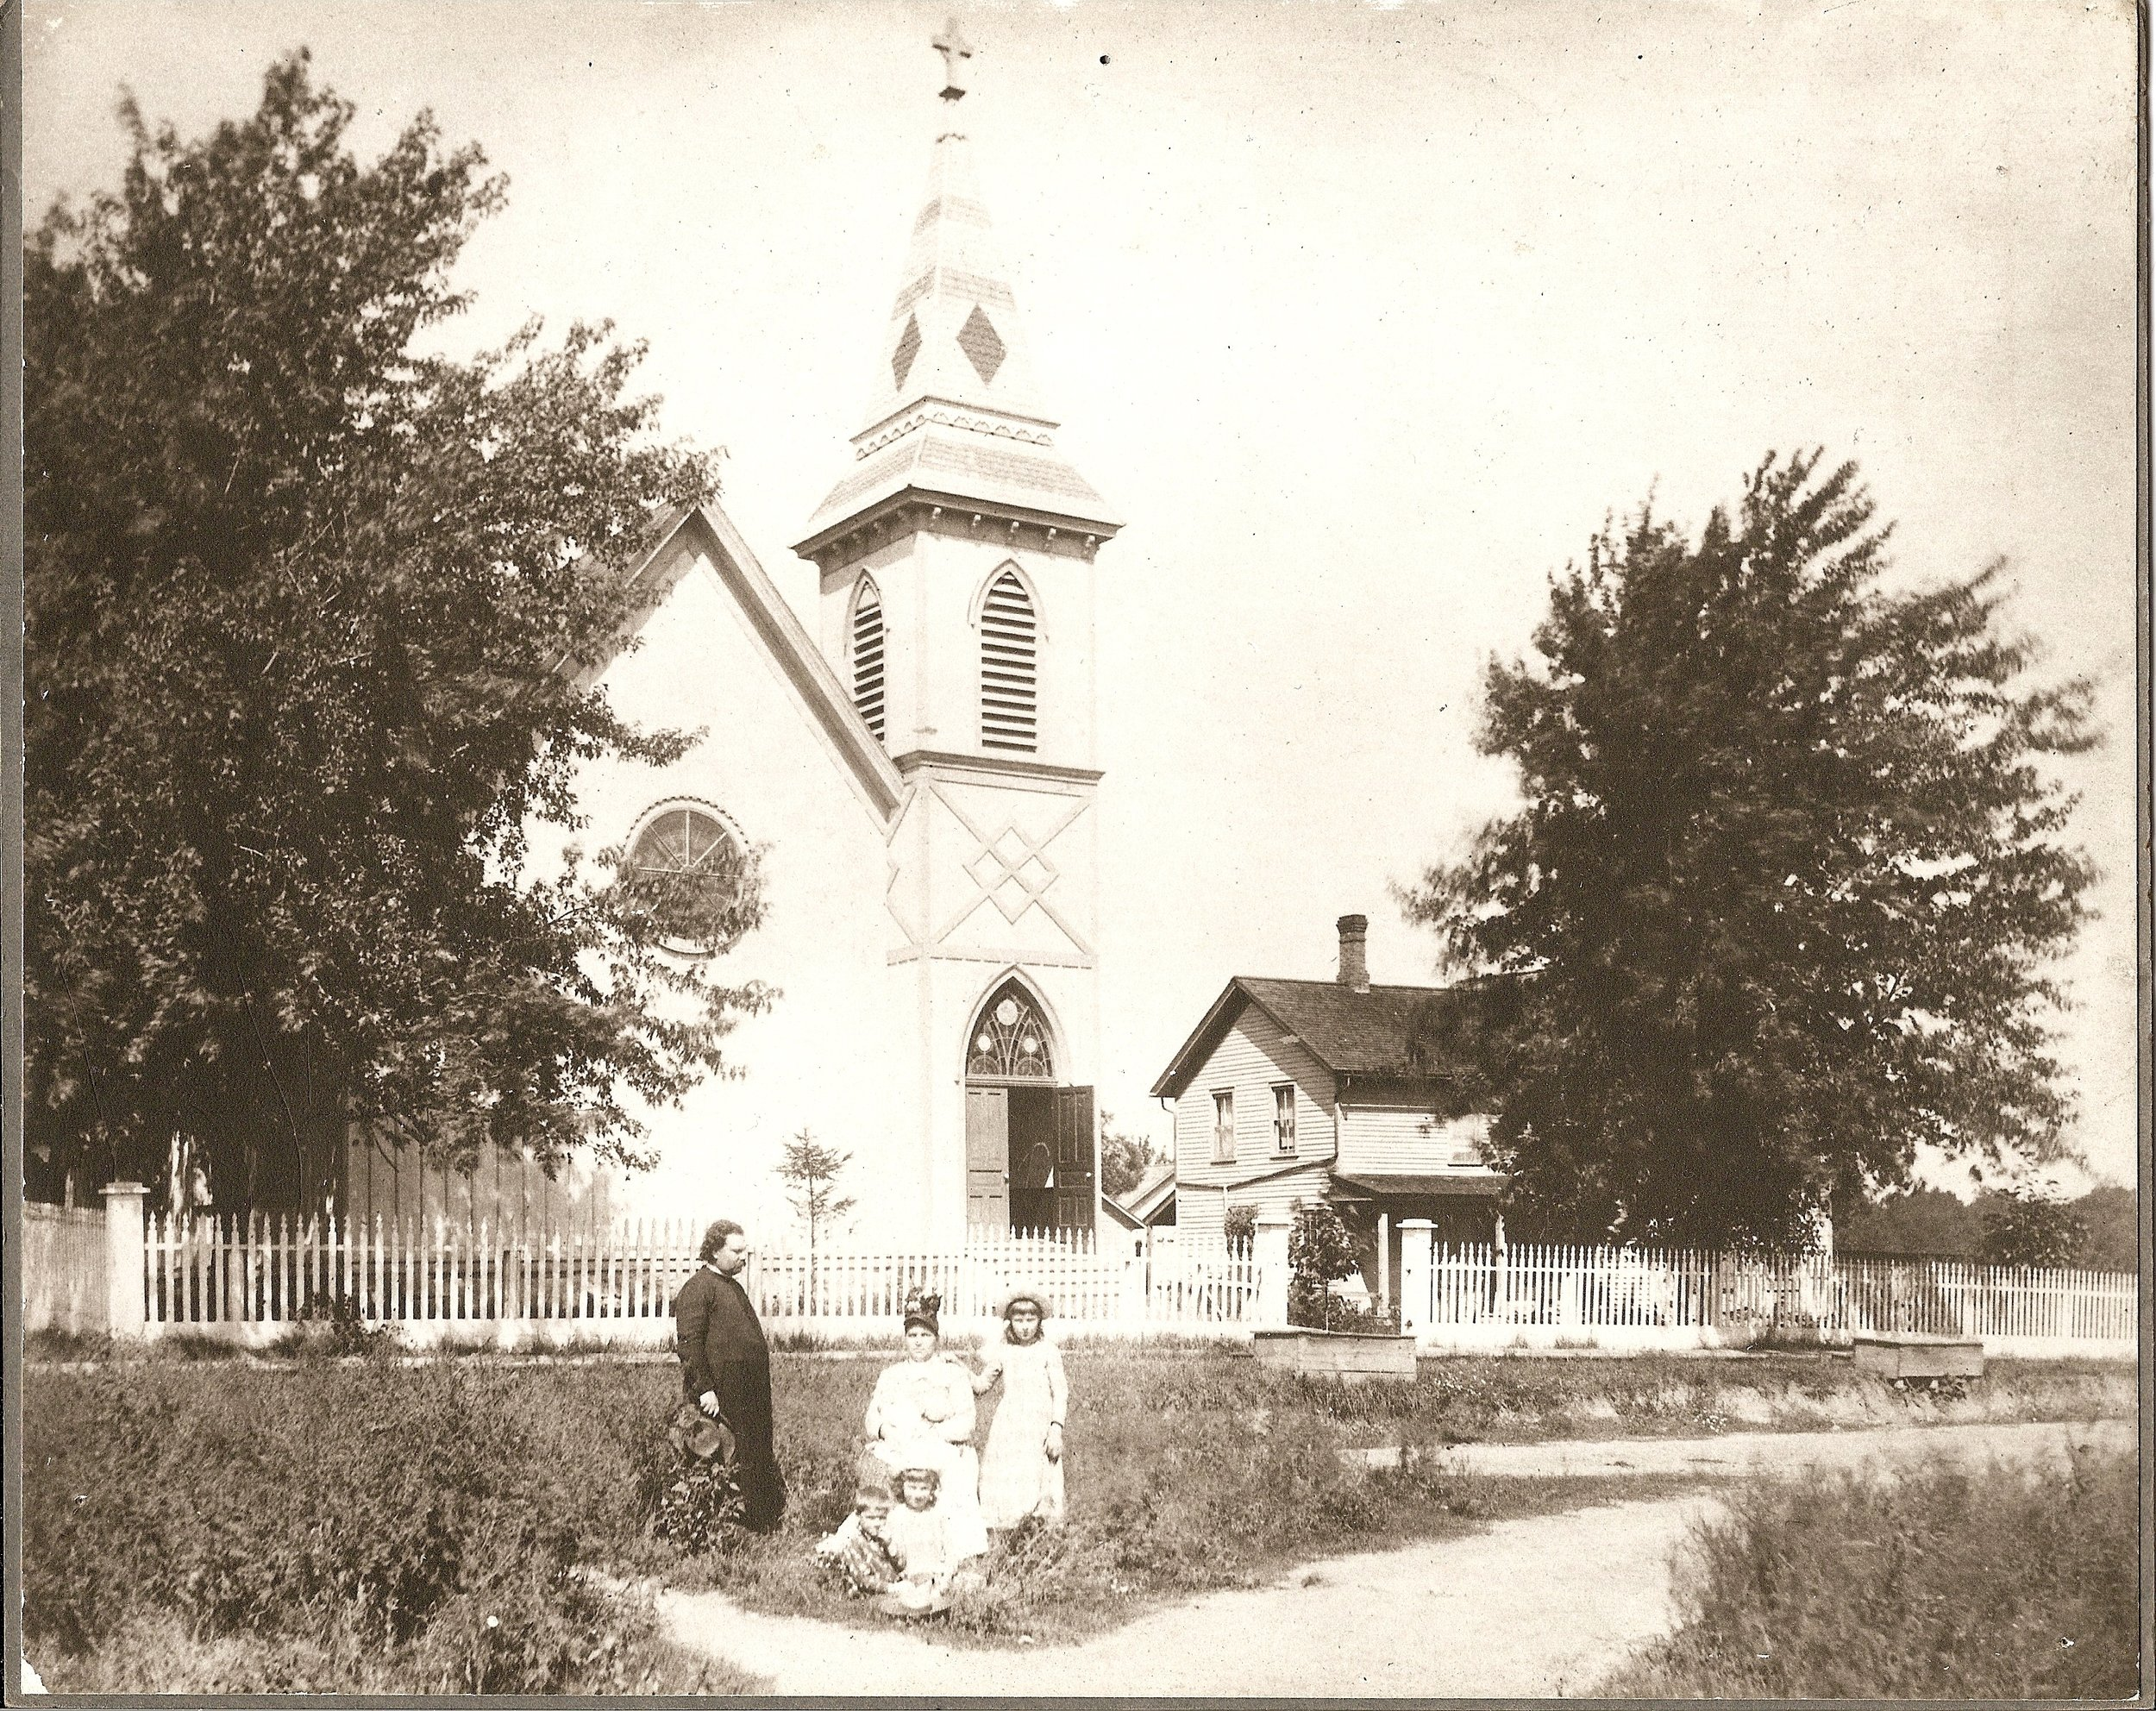 The Rev. Charles Hodge, wife Laura, and children Justin, Charles and Mary (in the lap of Laura) pose in front of Grace Church in this iconic photo from 1900 during Hodge's second term as priest.